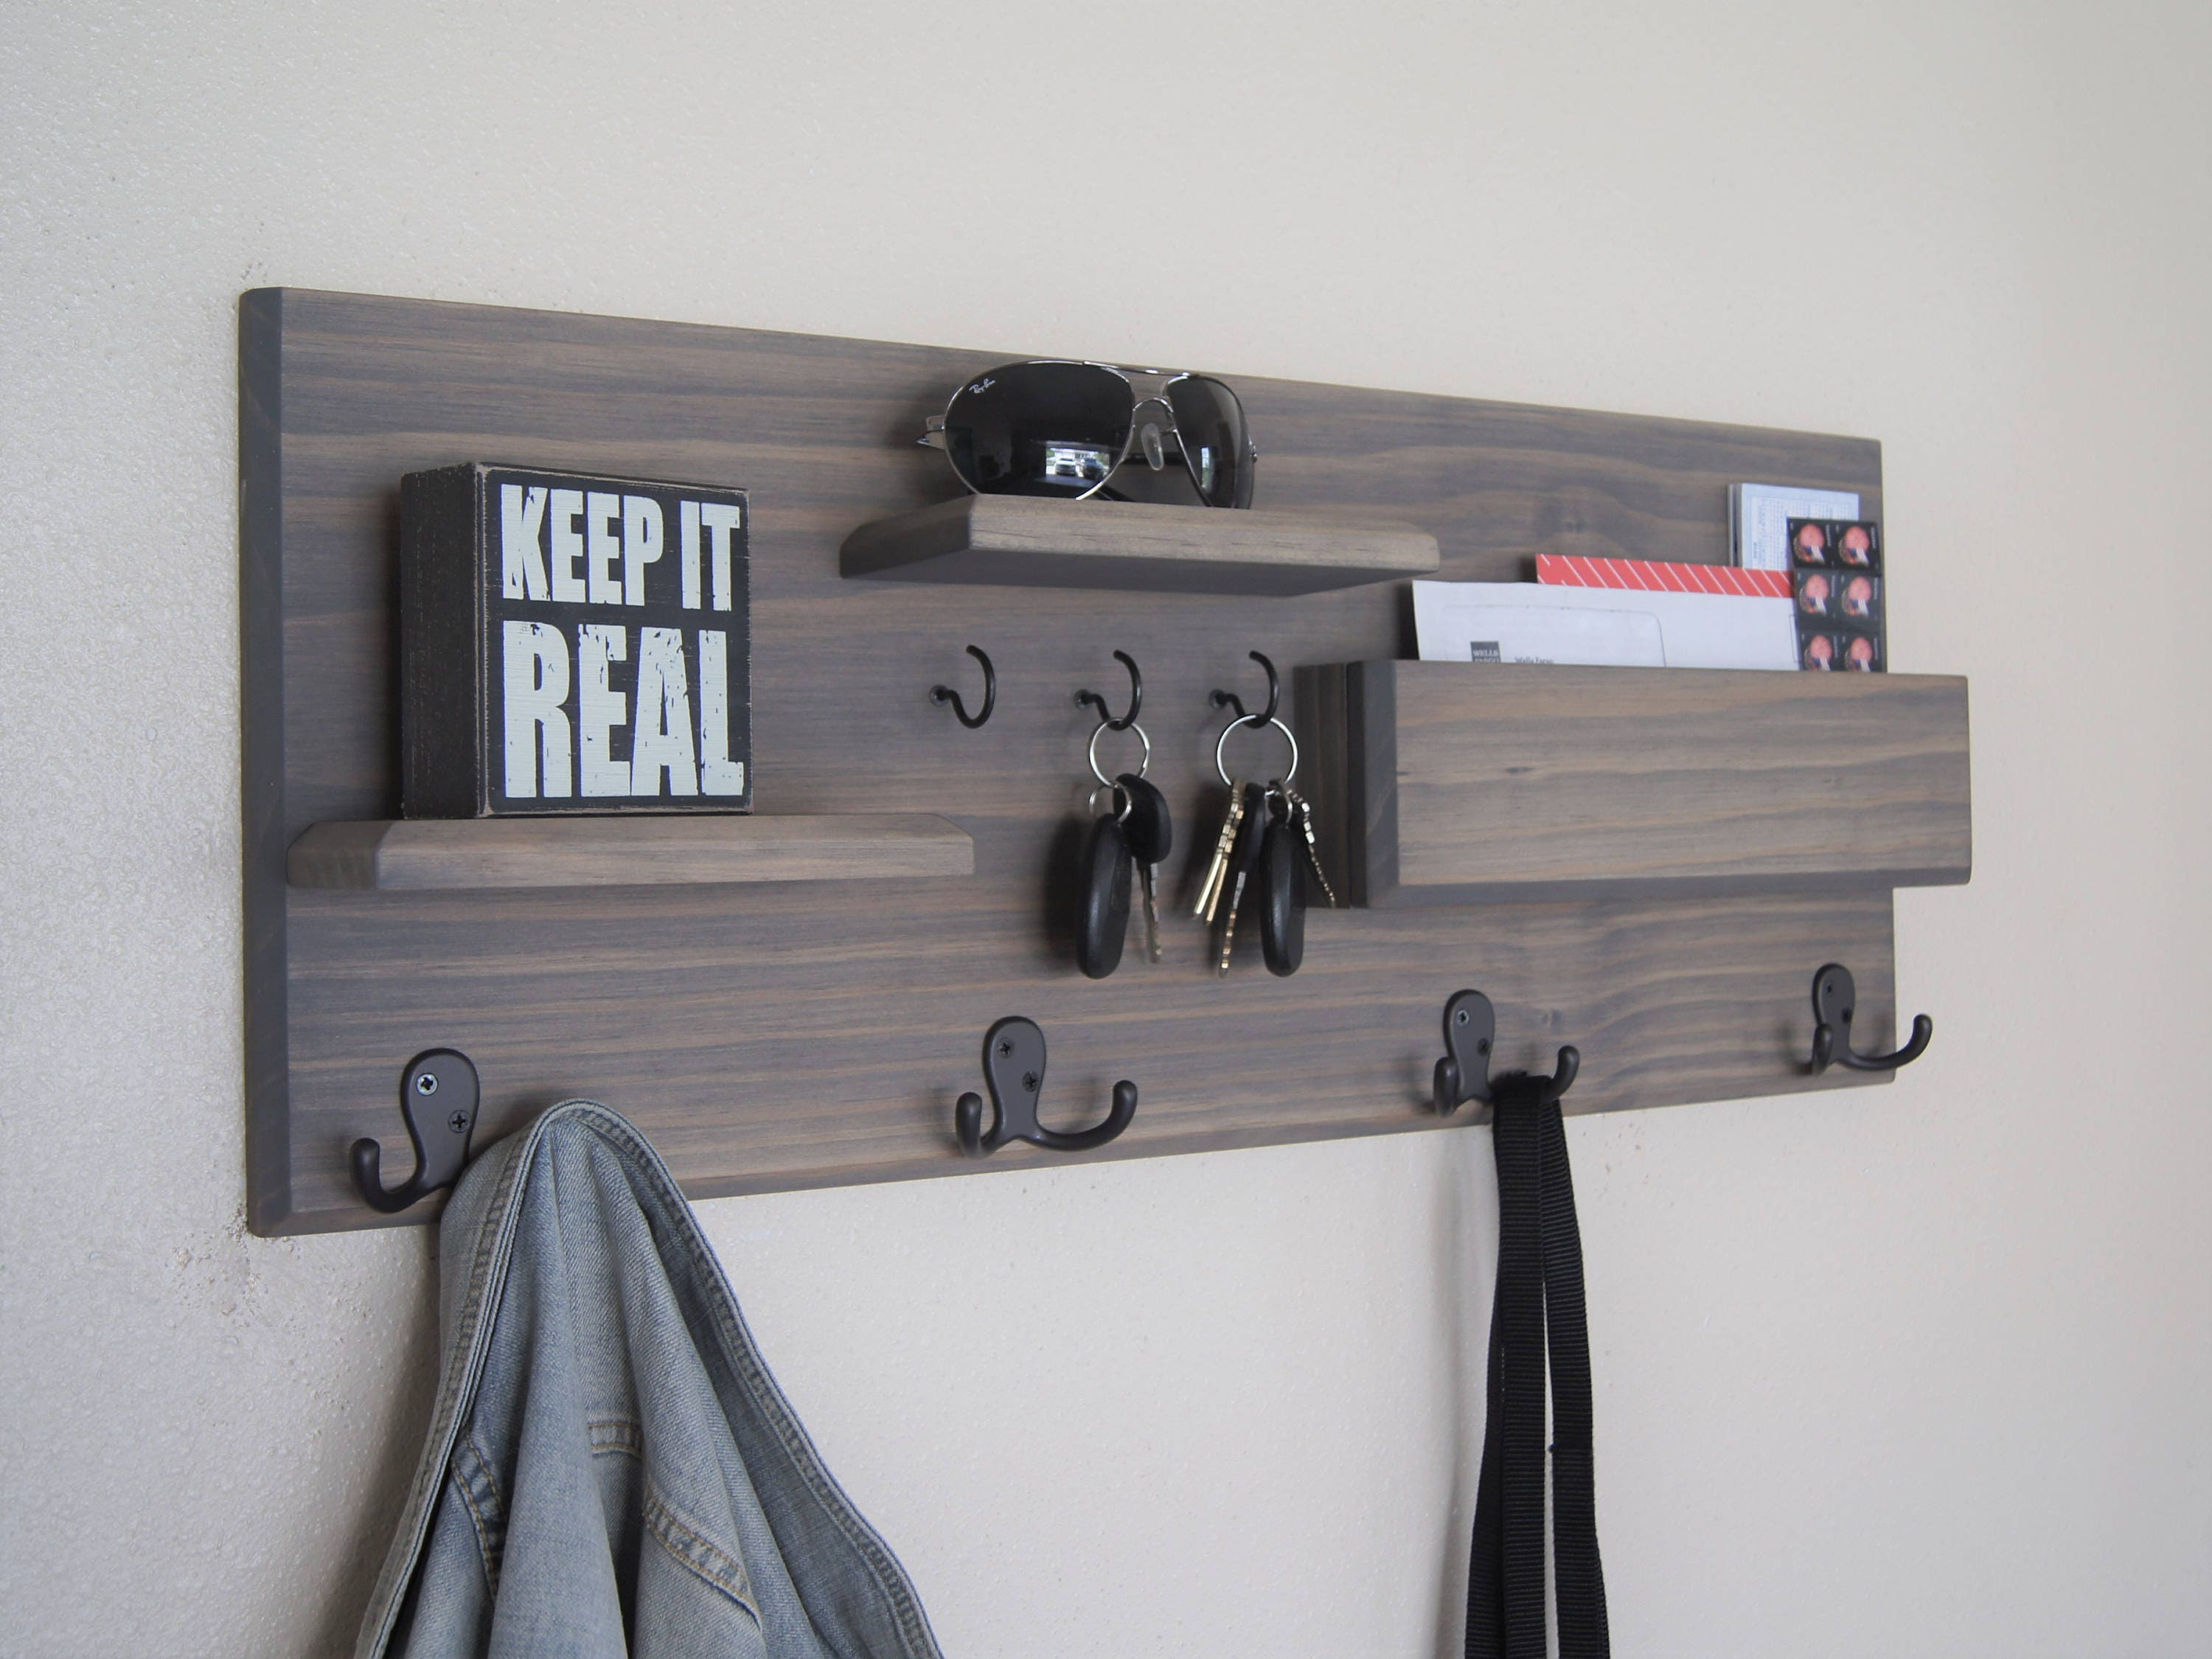 pdx wall key rack shelf mounted hanging wayfair compartment furniture coat homestar